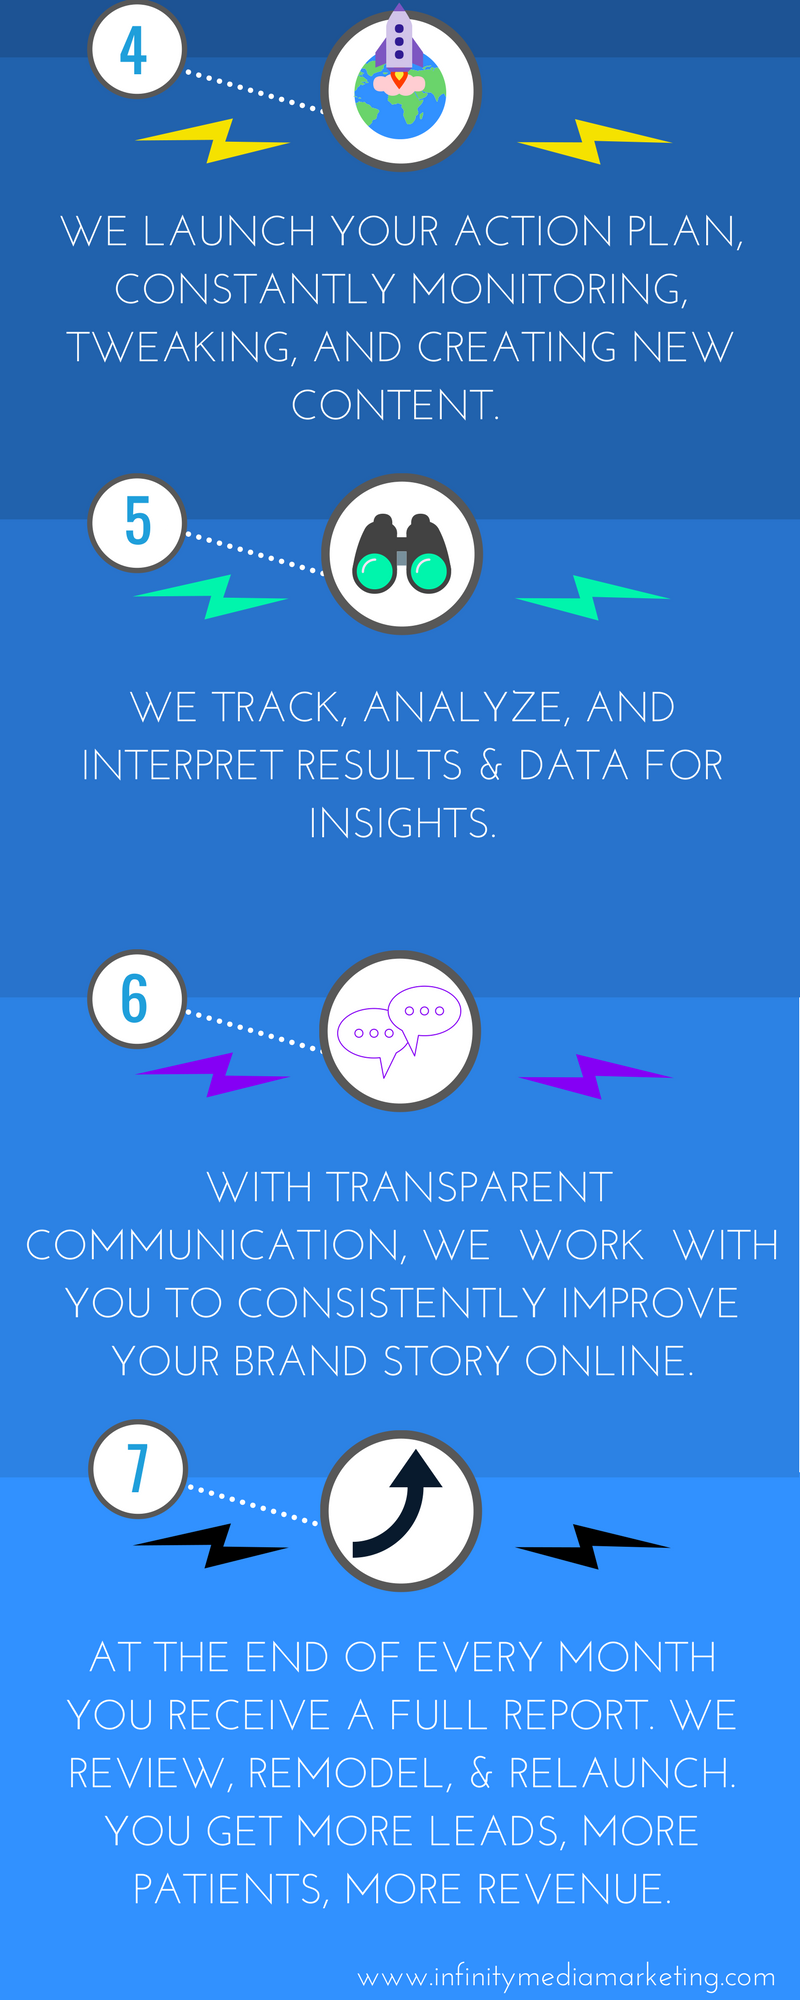 Infinity Media Marketing- Our approach for the success of your business